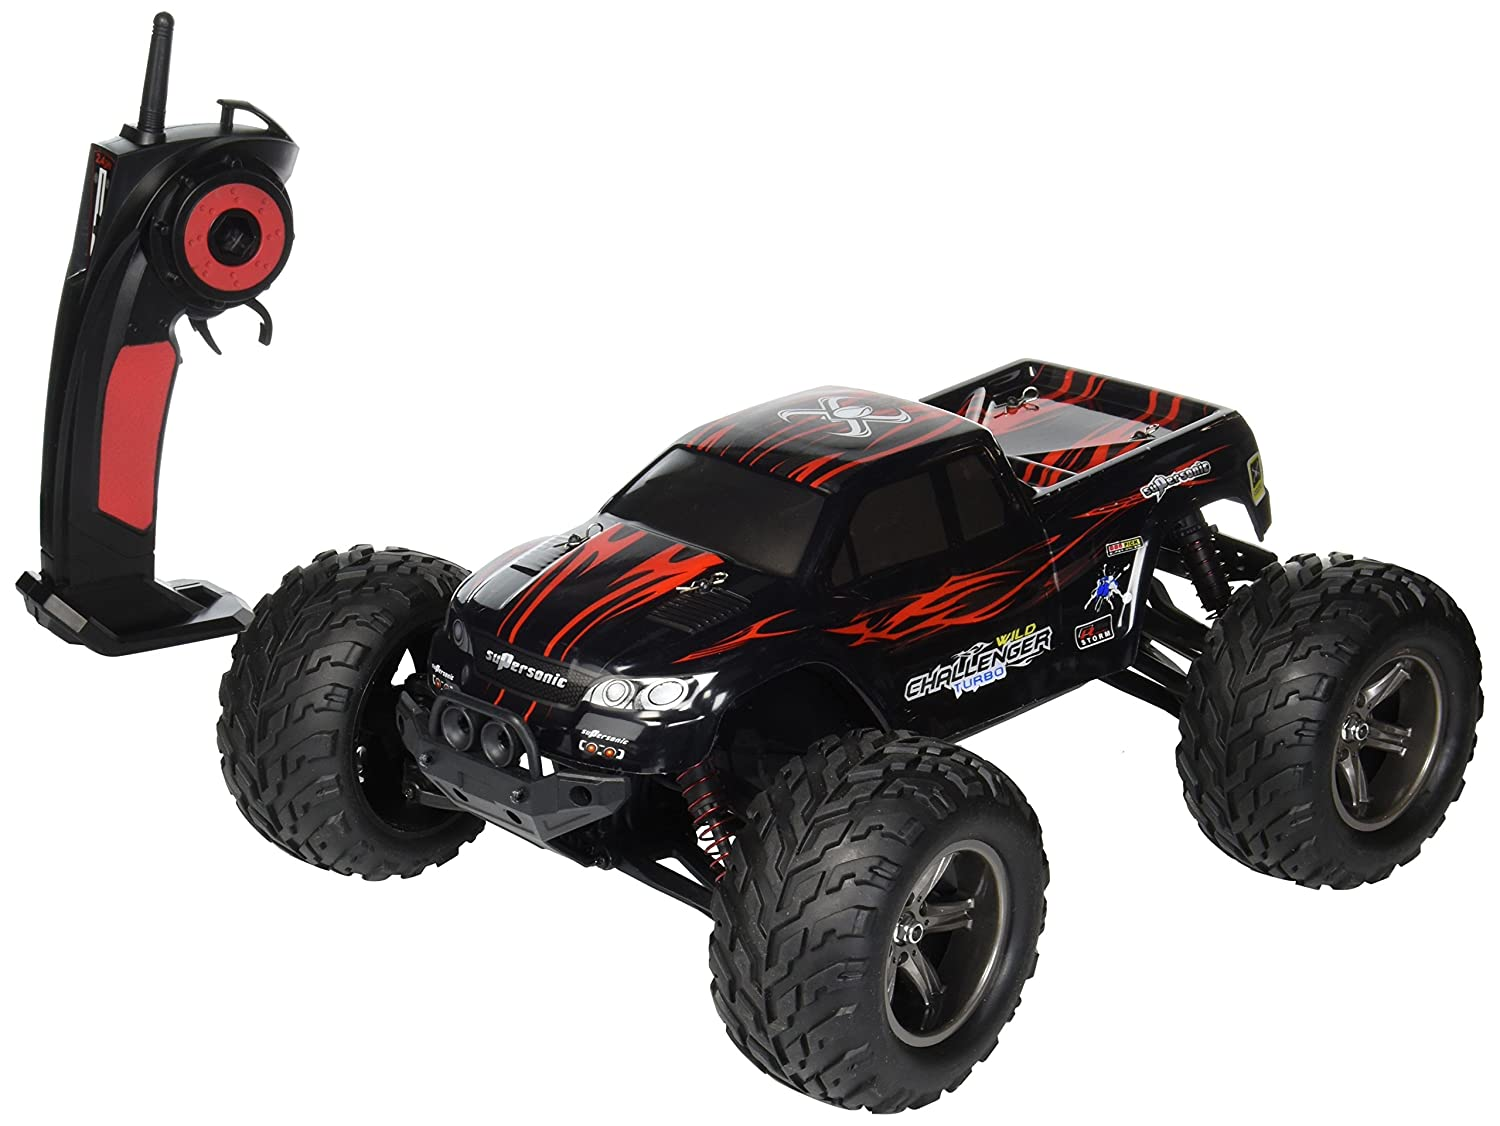 AMOSTING S911 35MPH 1/12 Scale 2.4GHz Remote Control Monster Truck - Red by AMOSTING: Amazon.es: Juguetes y juegos